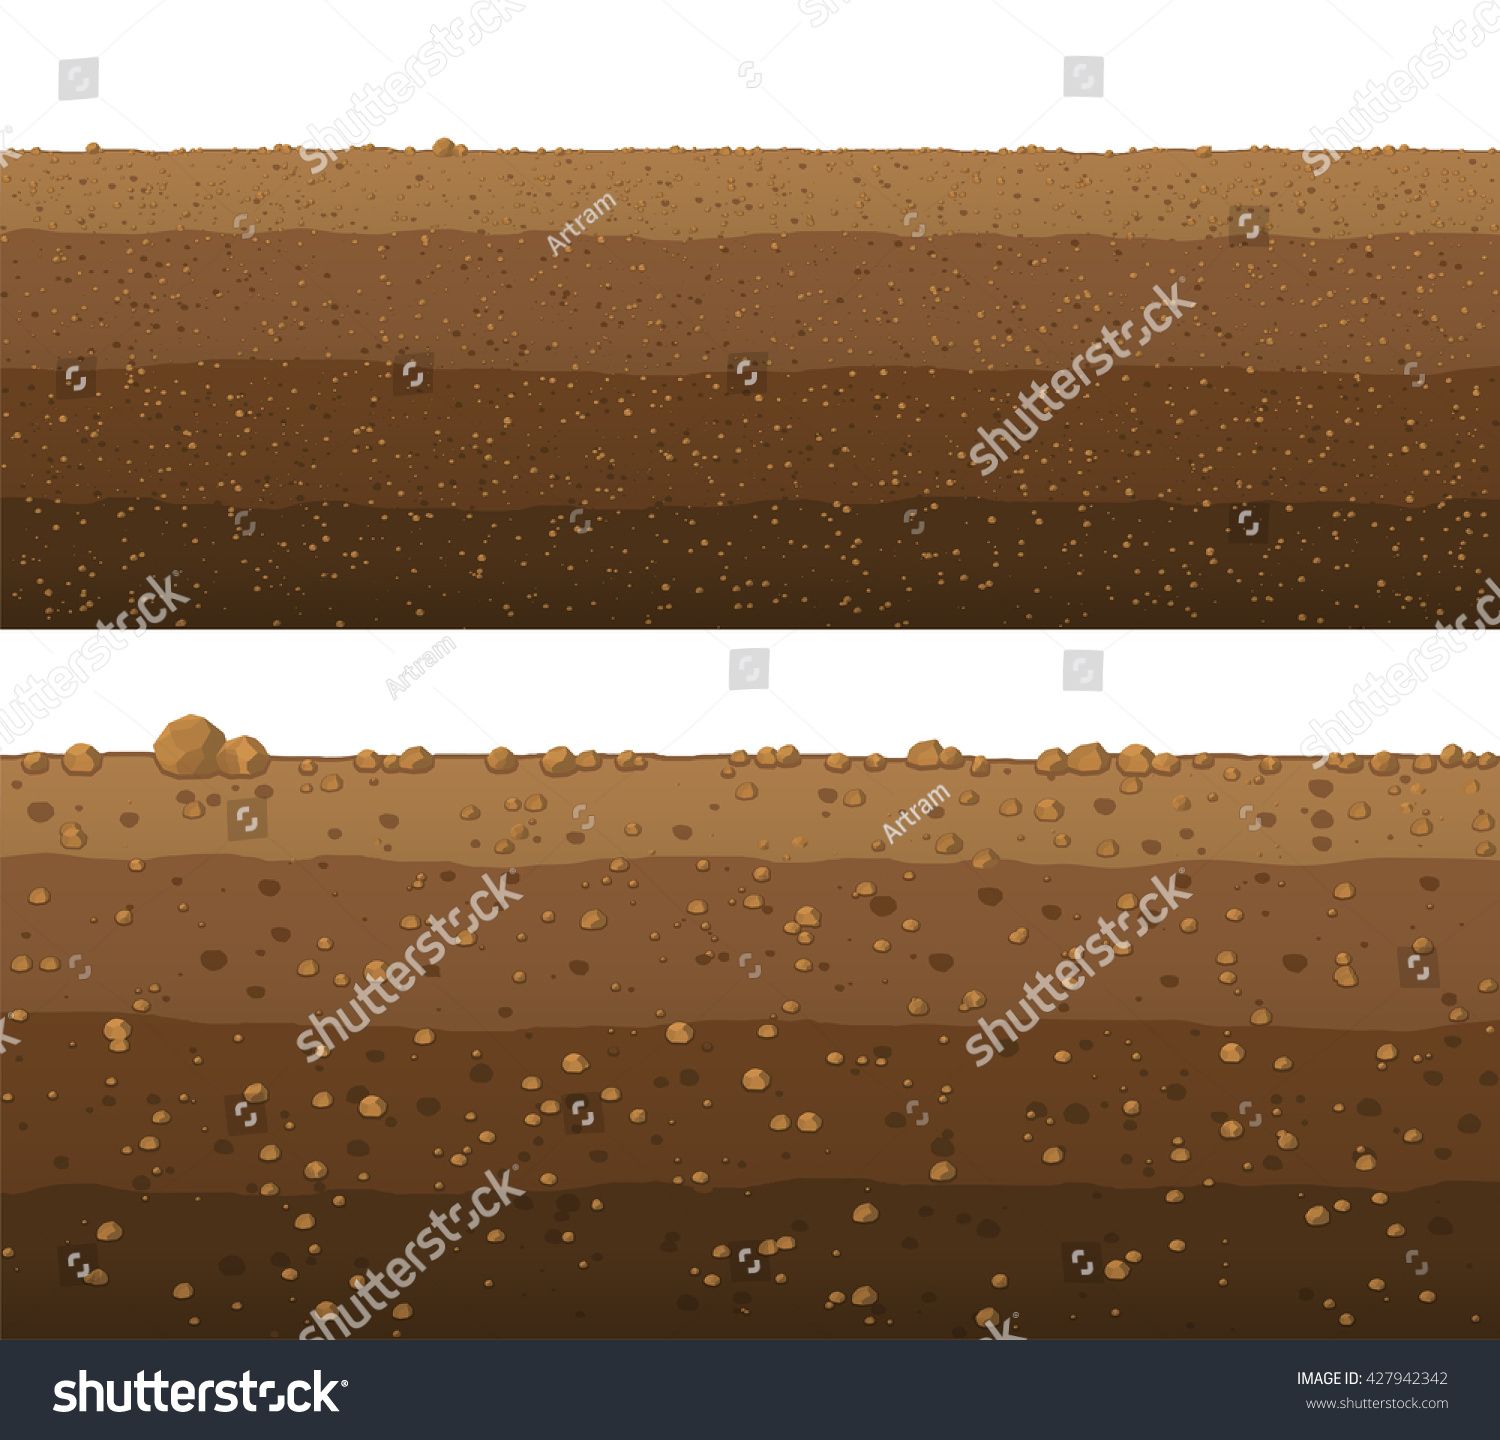 Underground Layers Of Earth Seamless Ground Surface